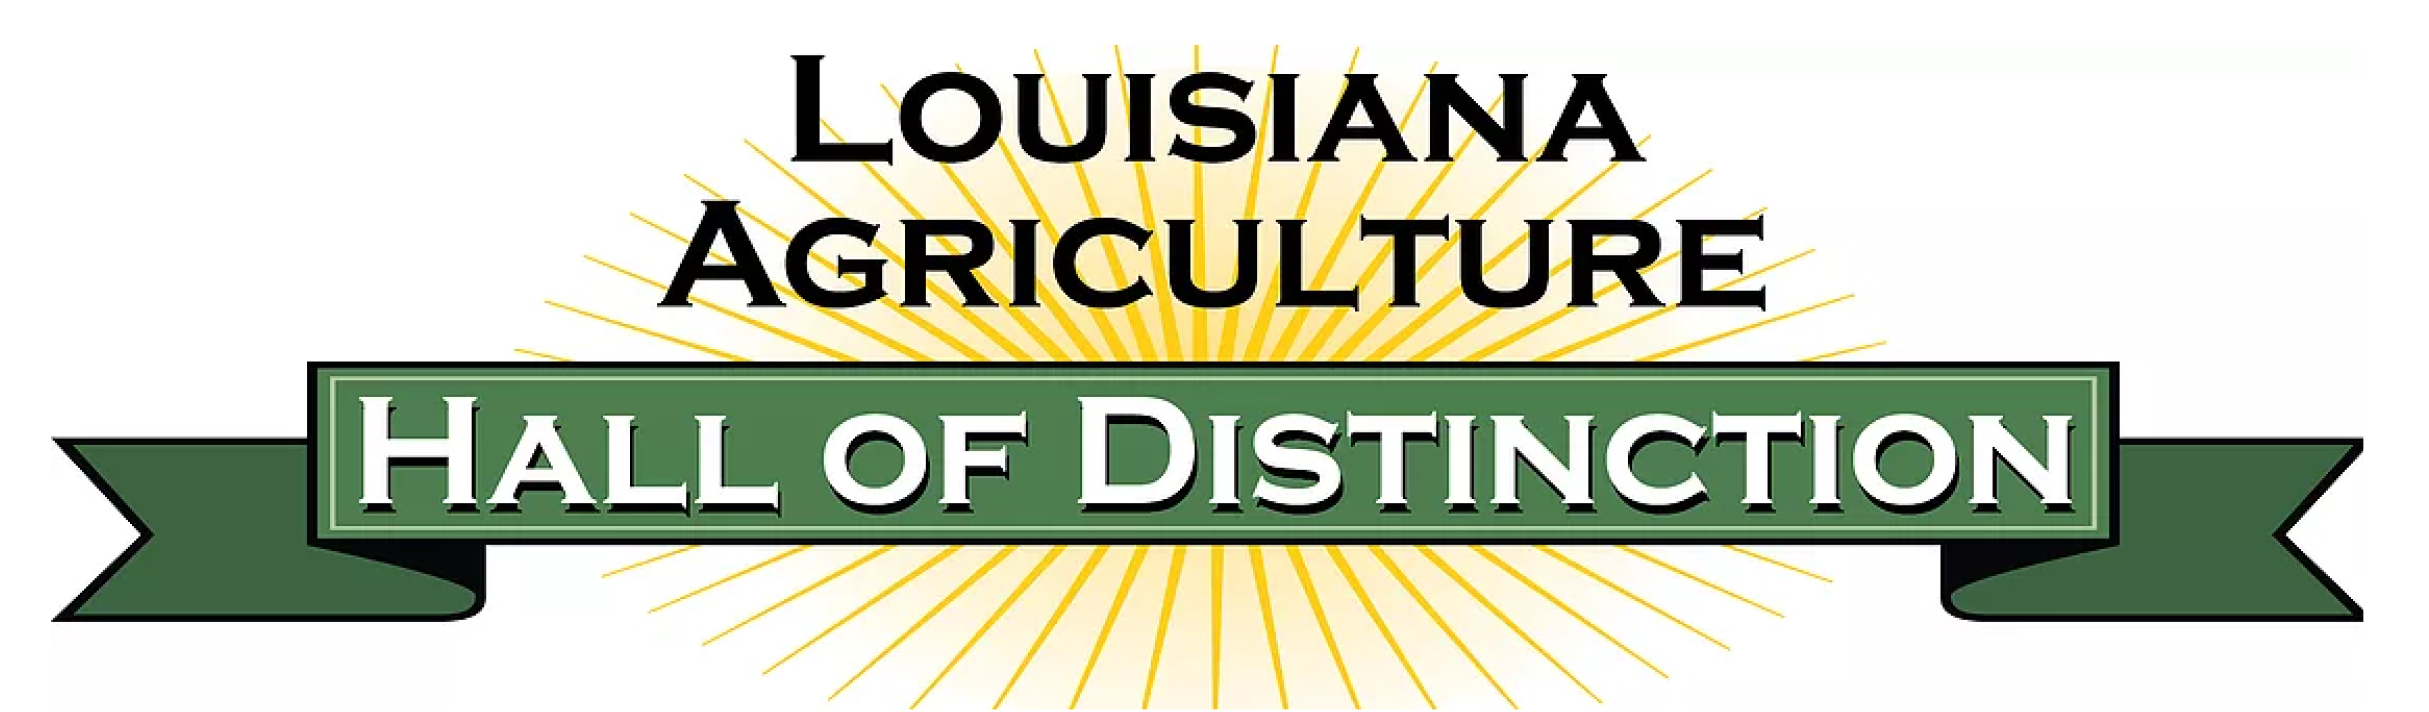 Nomination deadline approaching for Louisiana Agriculture Hall of Distinction